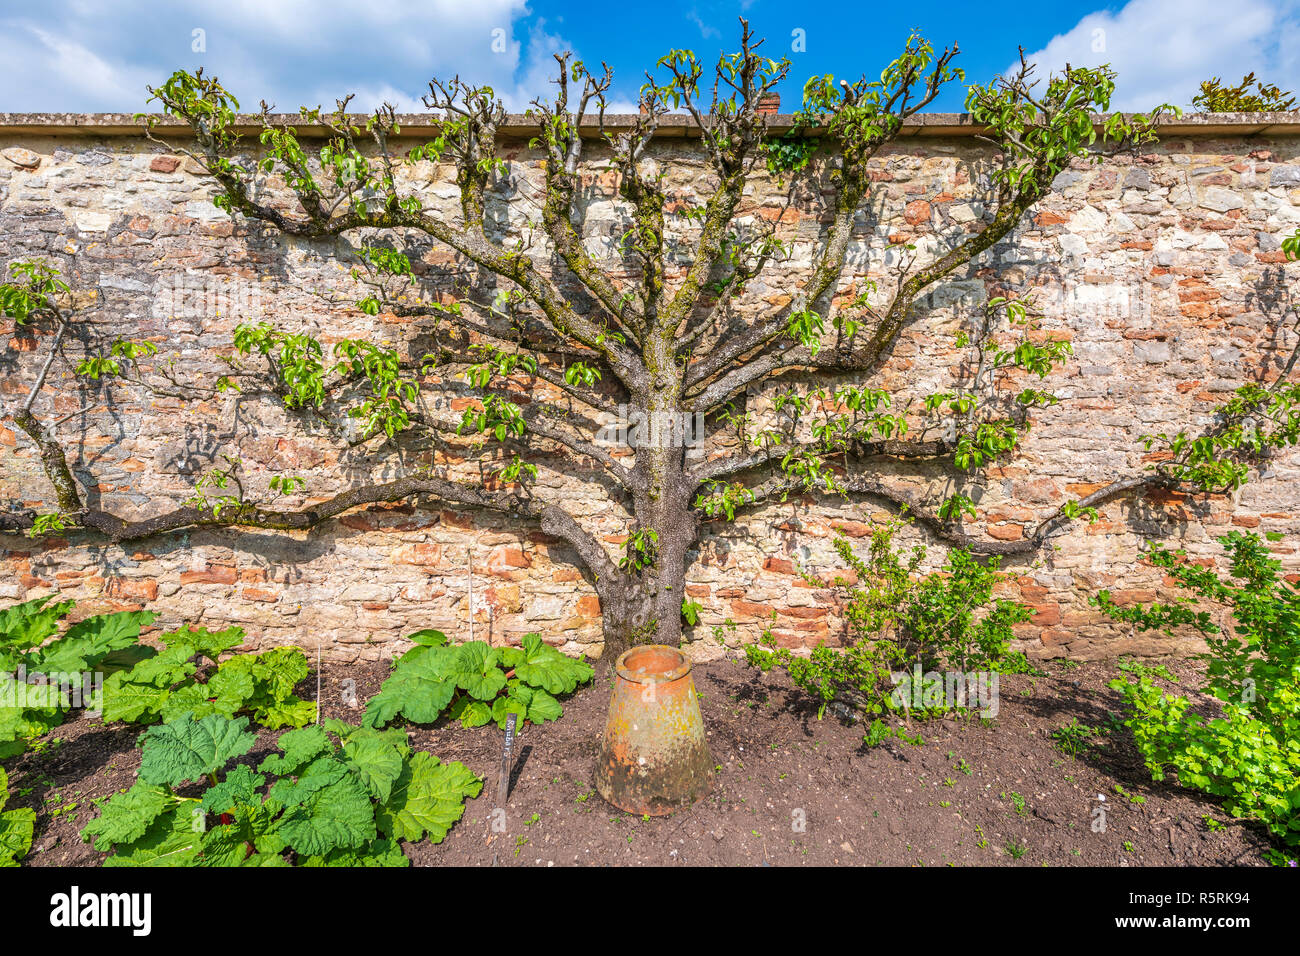 A beautiful example of a cordoned fruit tree against a red brick wall on an allotment in Somerset, England. - Stock Image